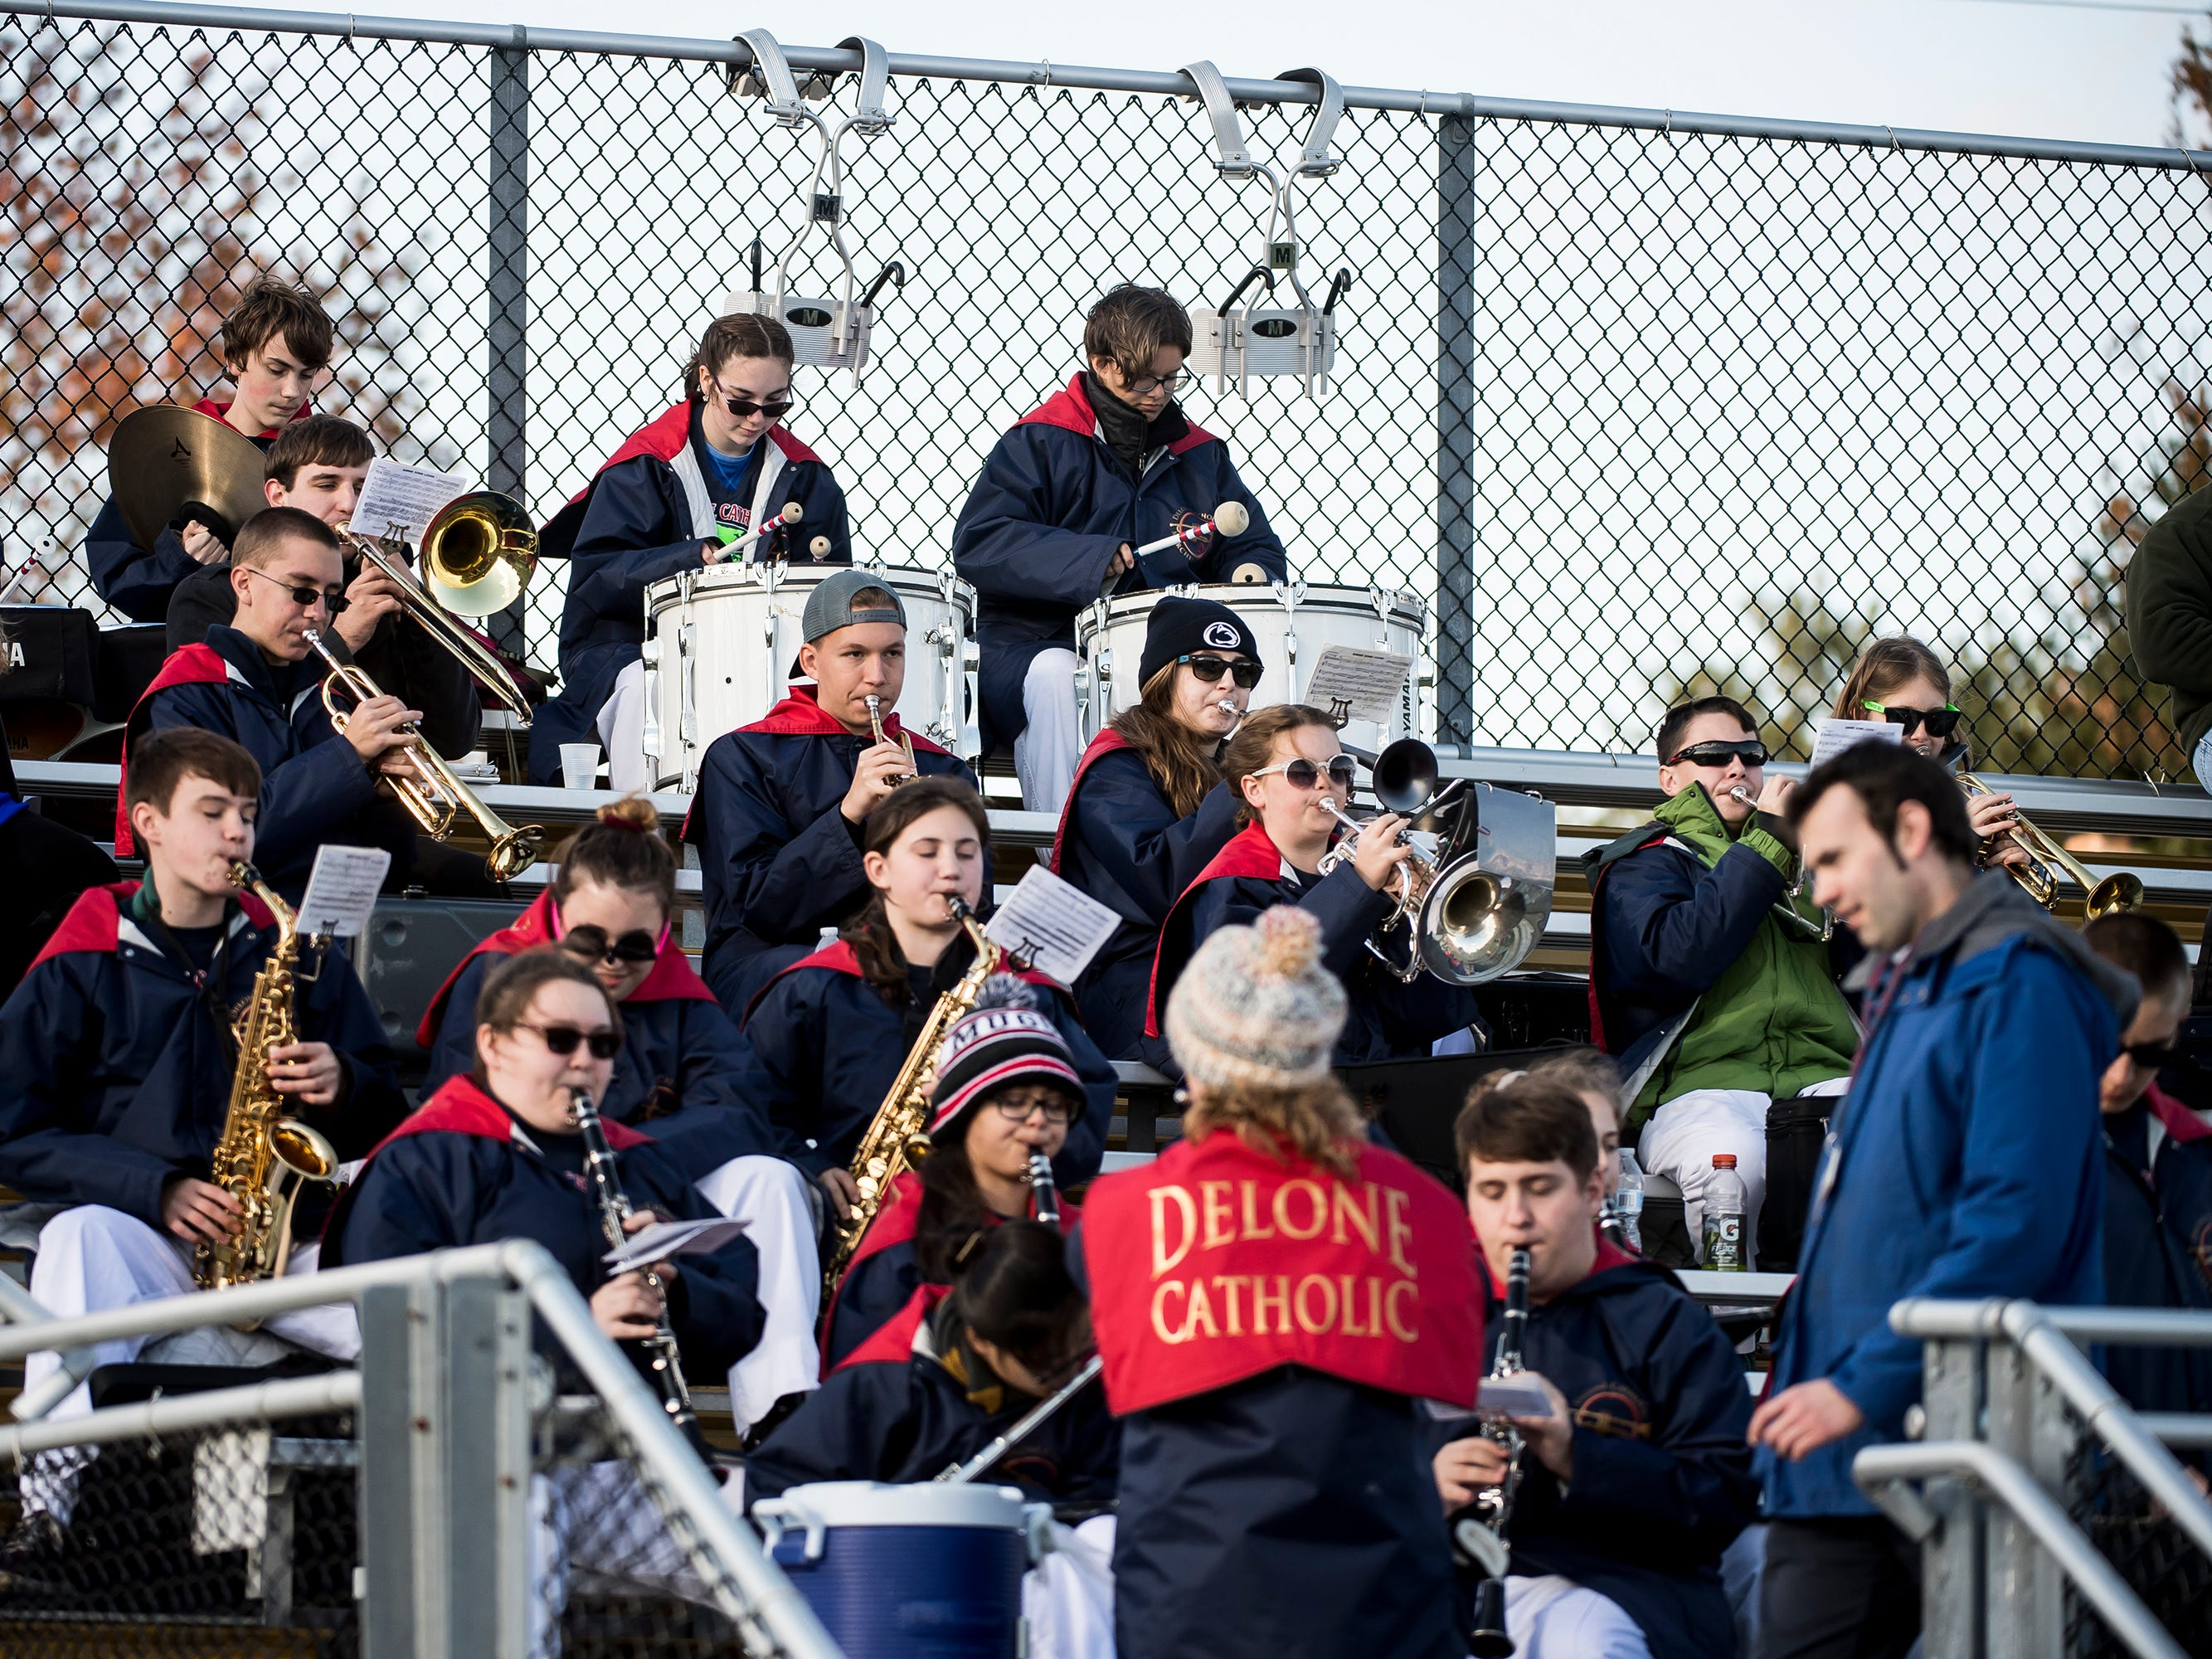 The Delone Catholic Squires marching band play during a District III Class 2A semifinal game against Upper Dauphin on Saturday, November 3, 2018. The Squires won 48-23.